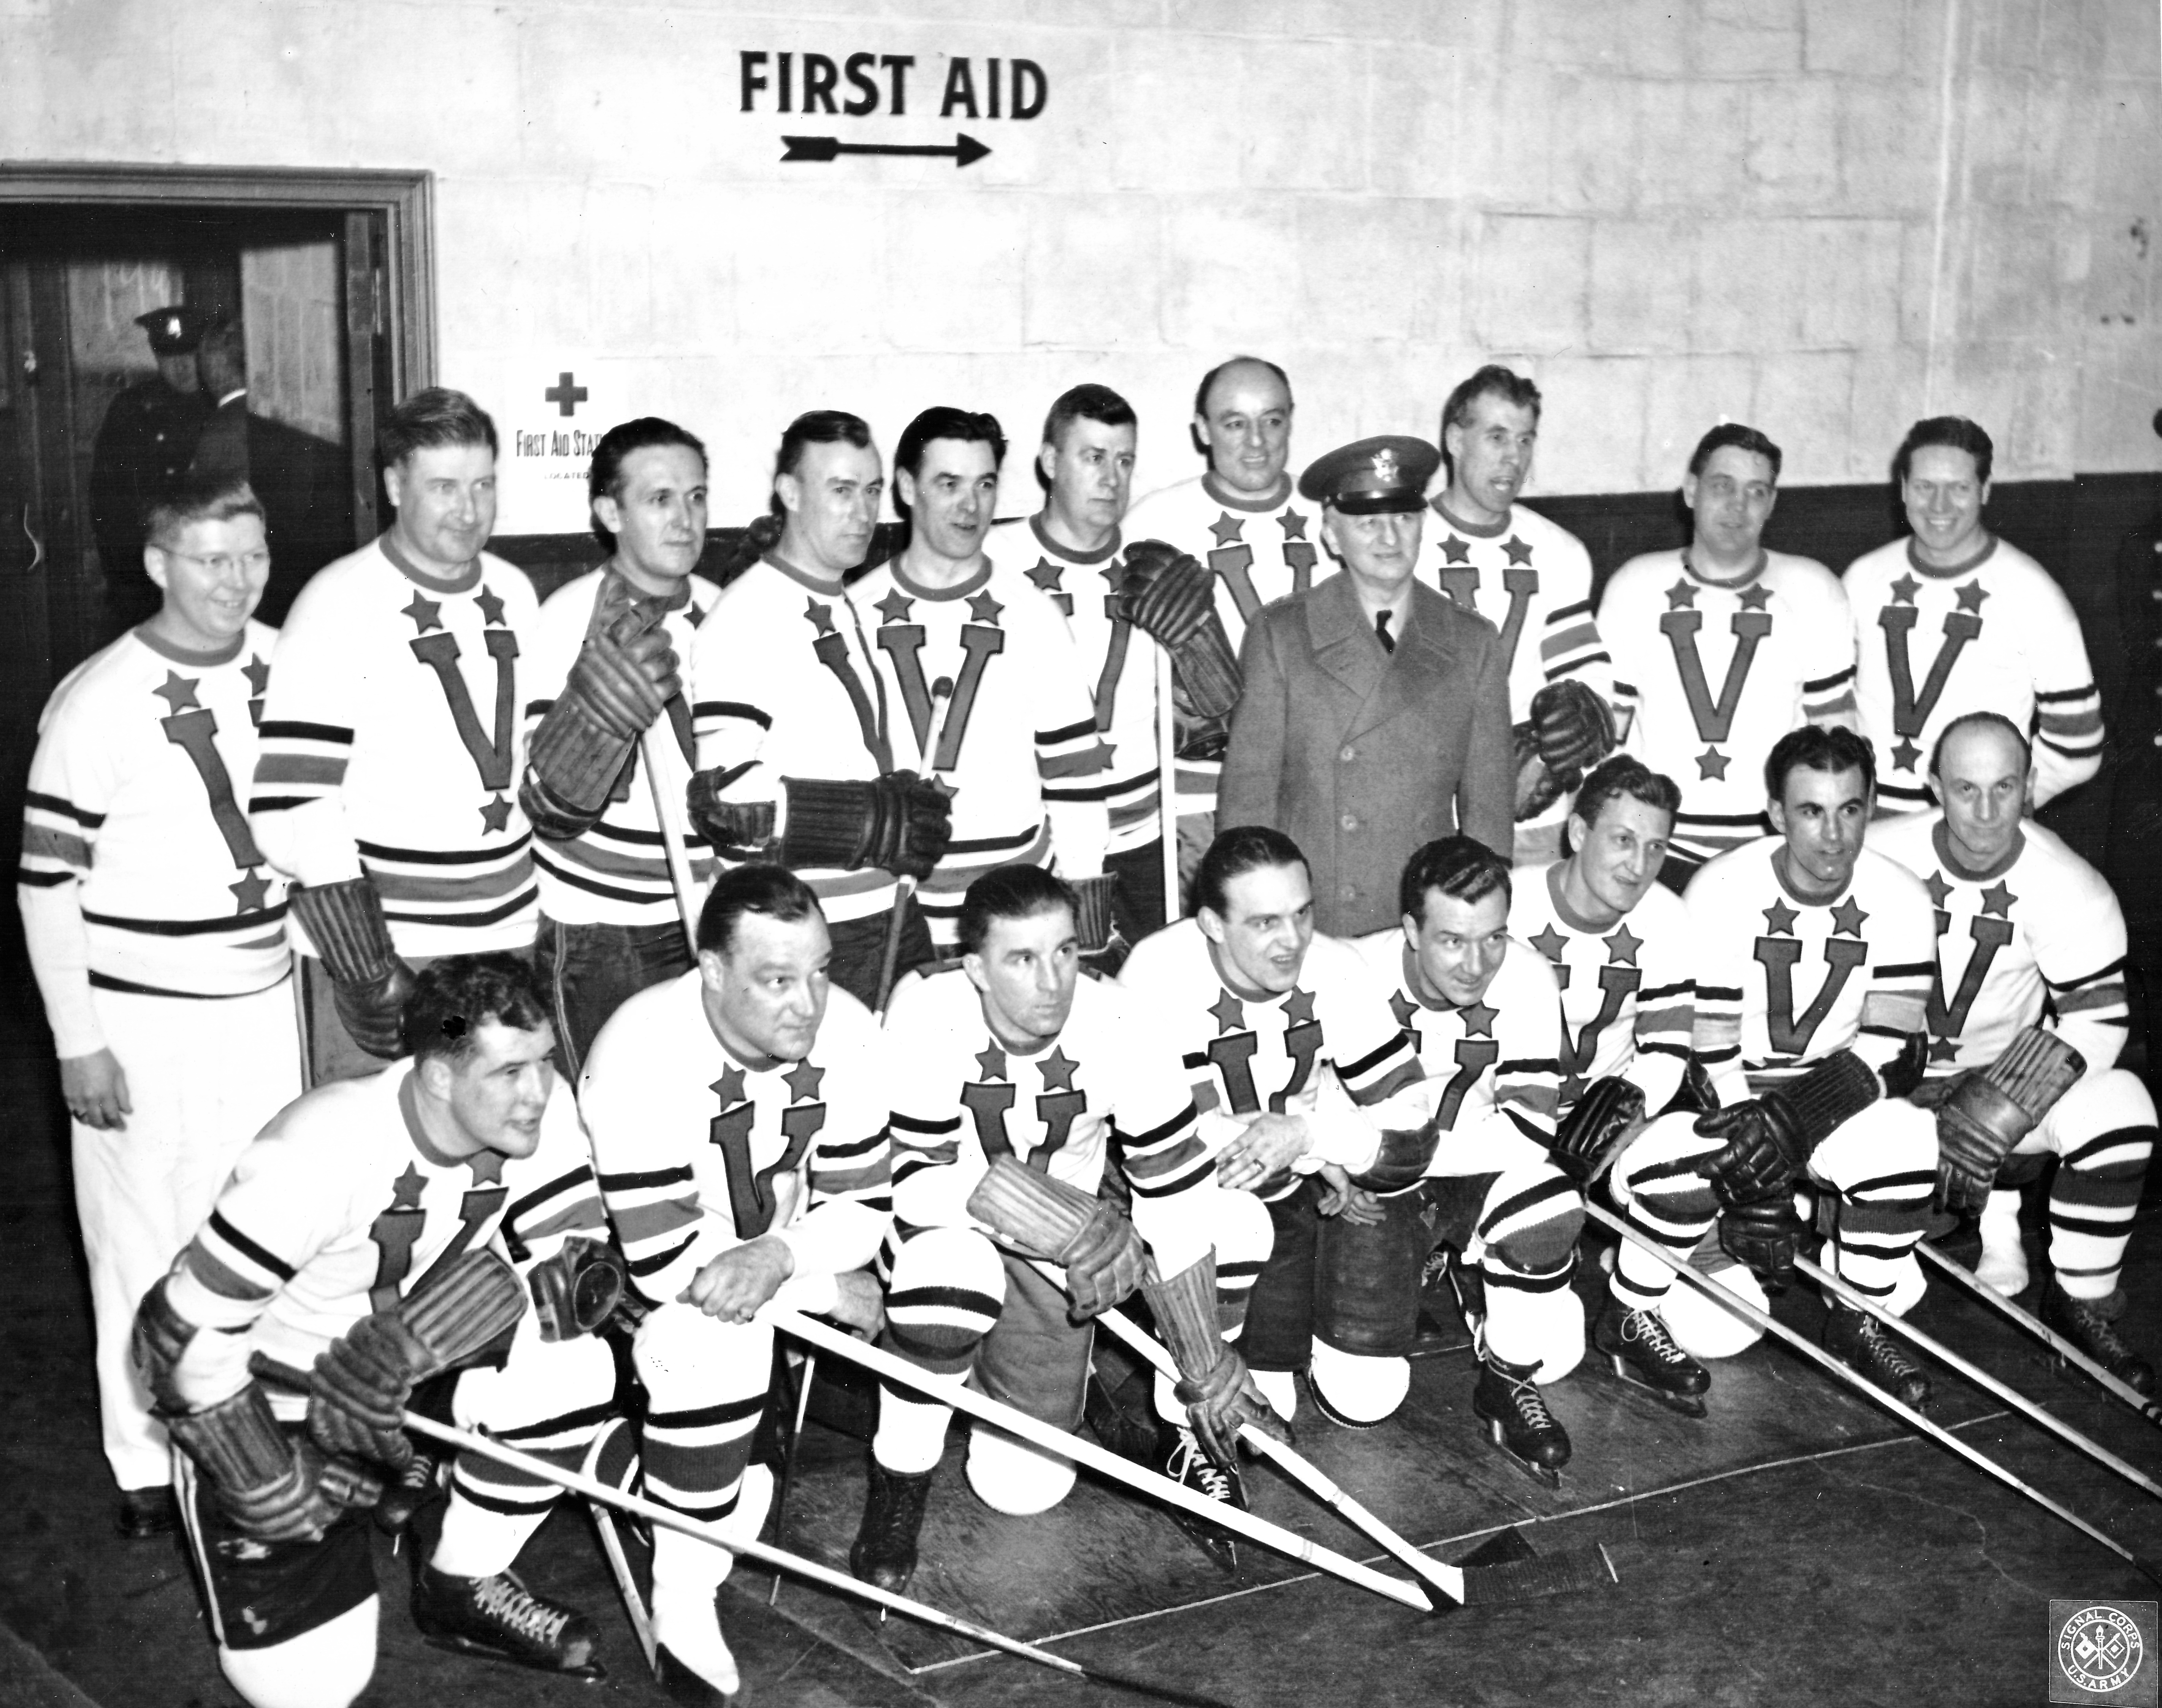 victory lap: in 1942, the nhl's aged all-stars lined up in boston